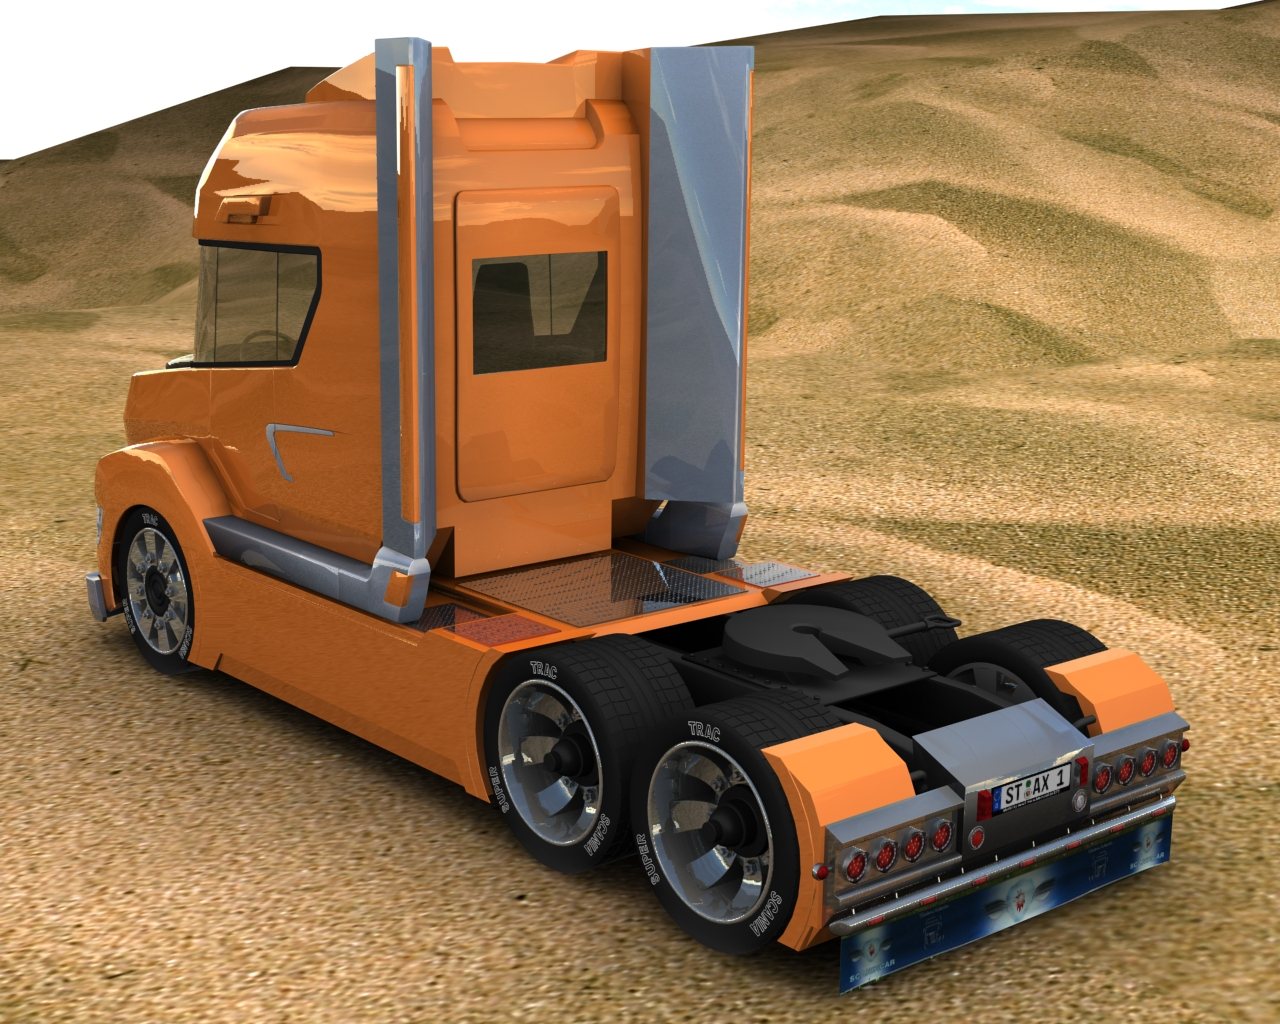 Scania concept stax picture